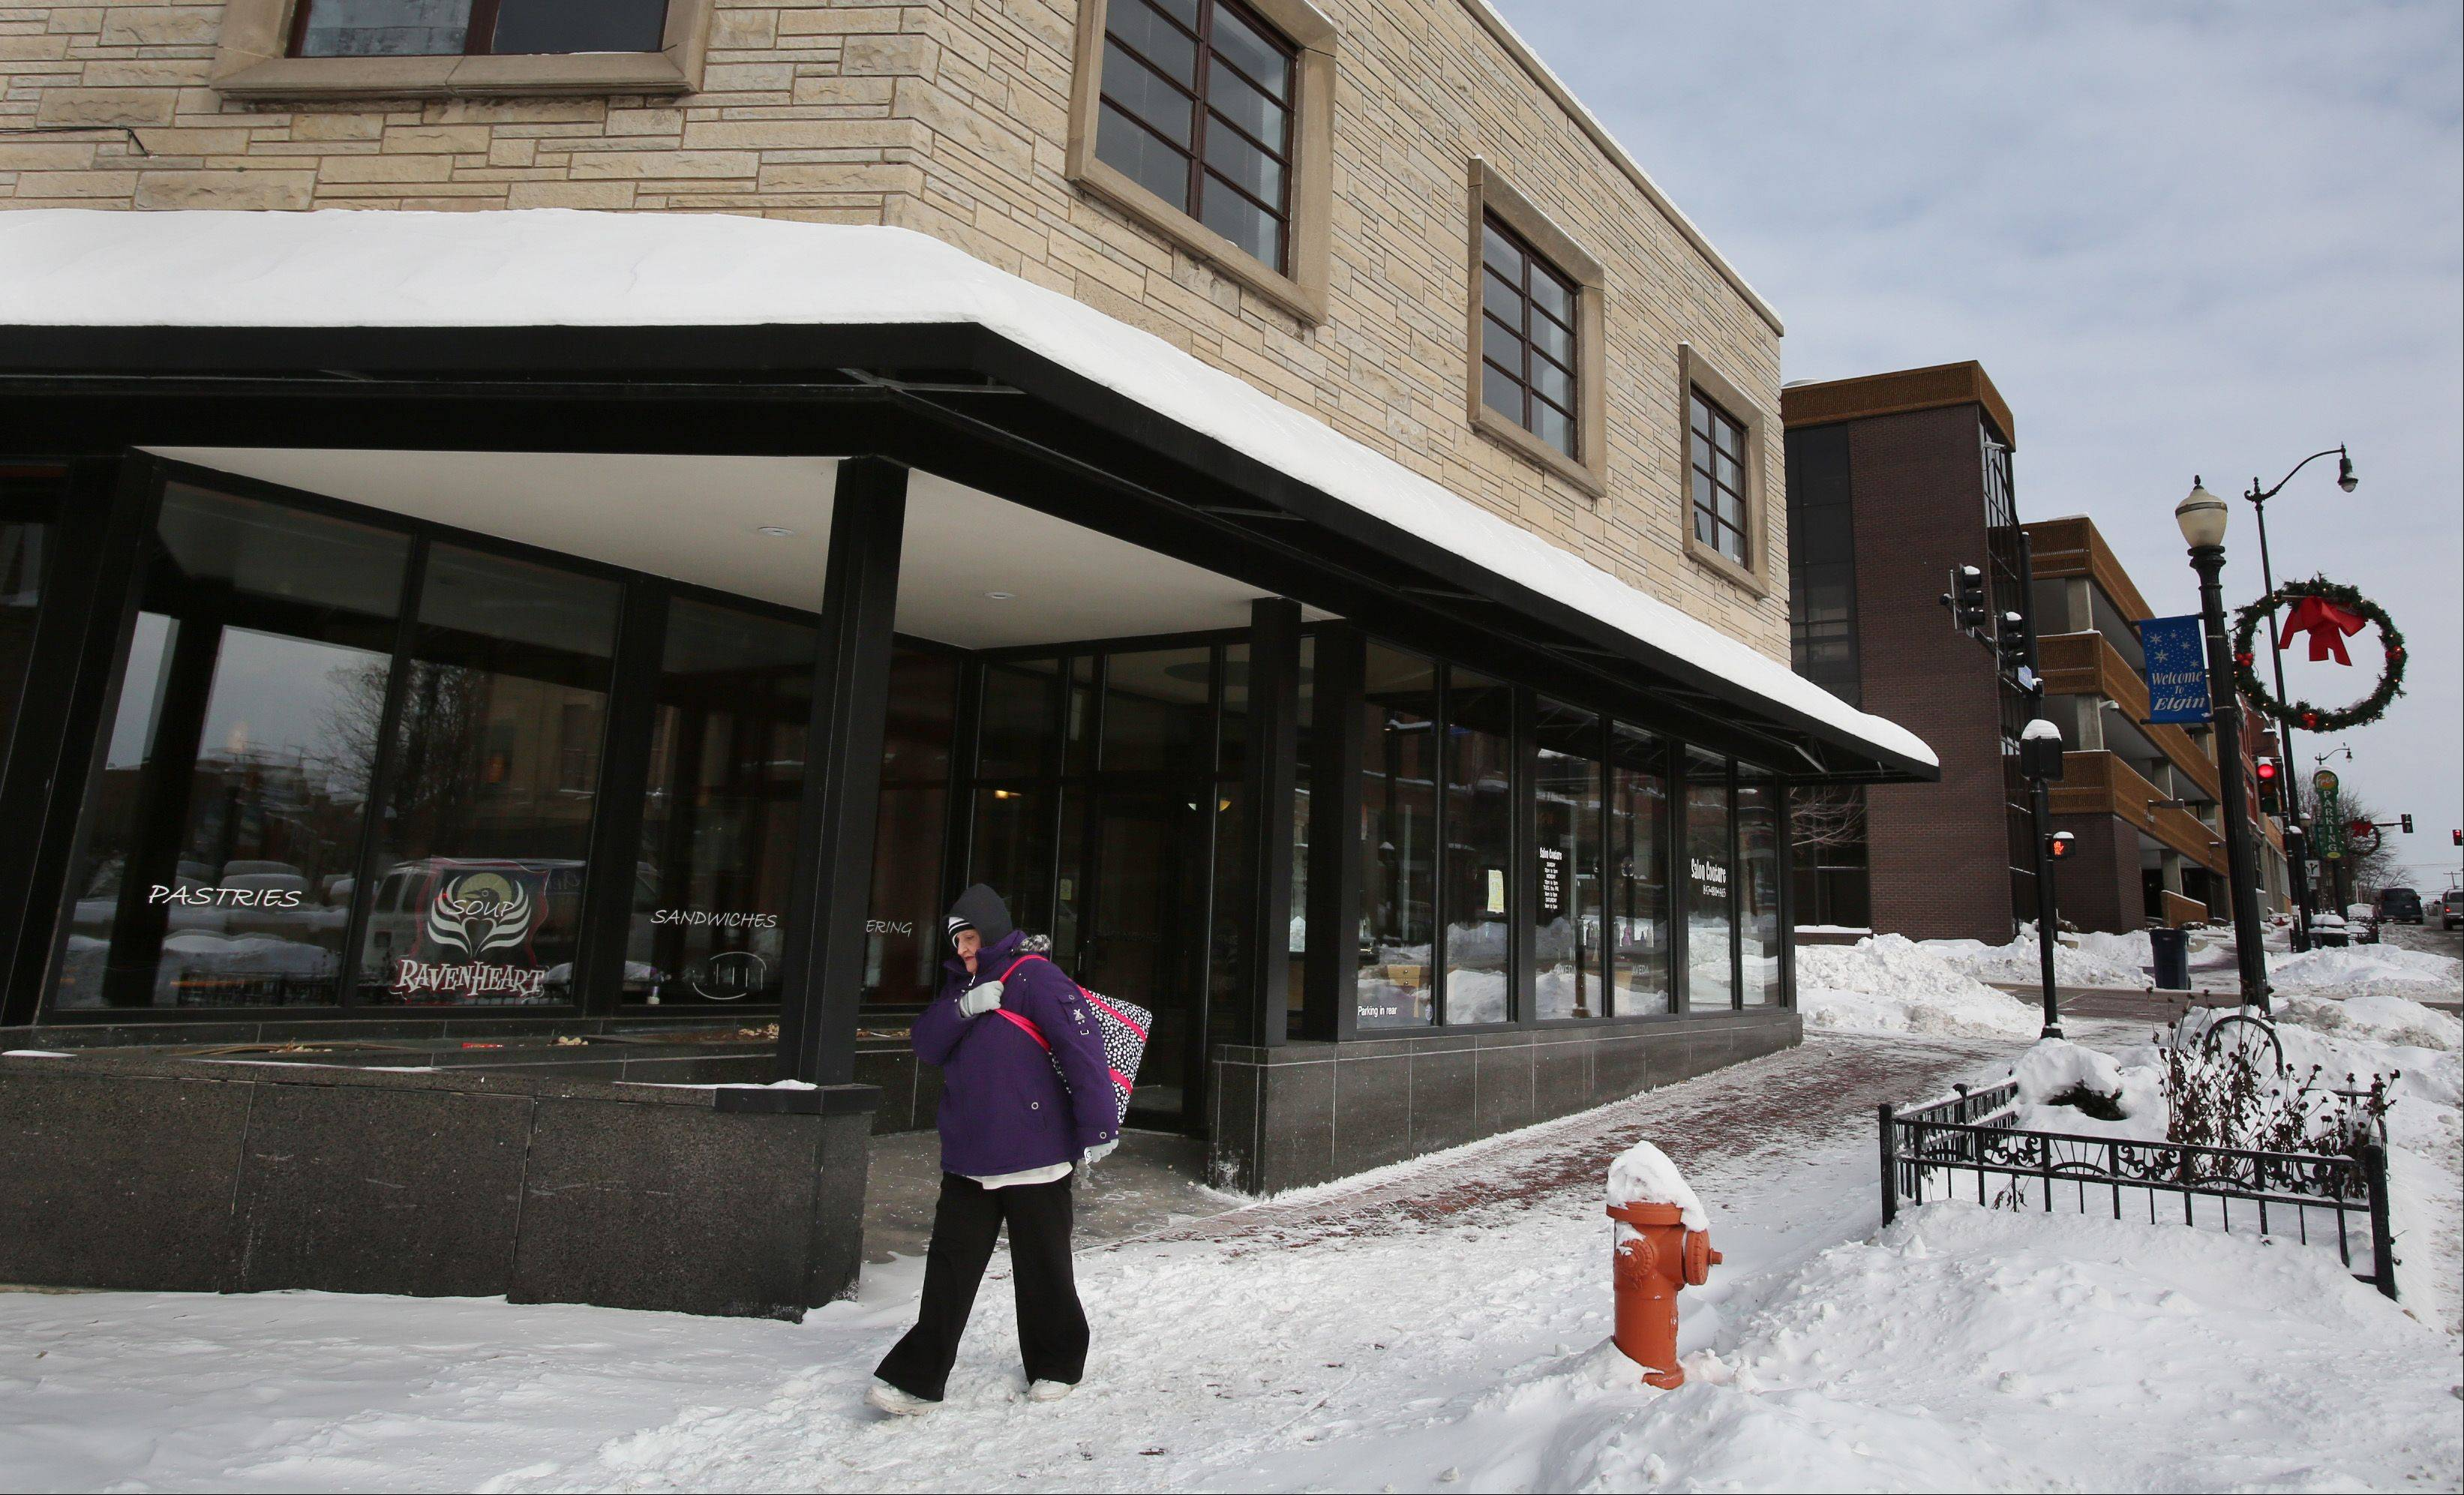 The Elgin liquor control commission Wednesday turned down a proposal by Java Jills to set up shop in the space formerly occupied by Ravenheart Coffee at 176 E. Chicago St.